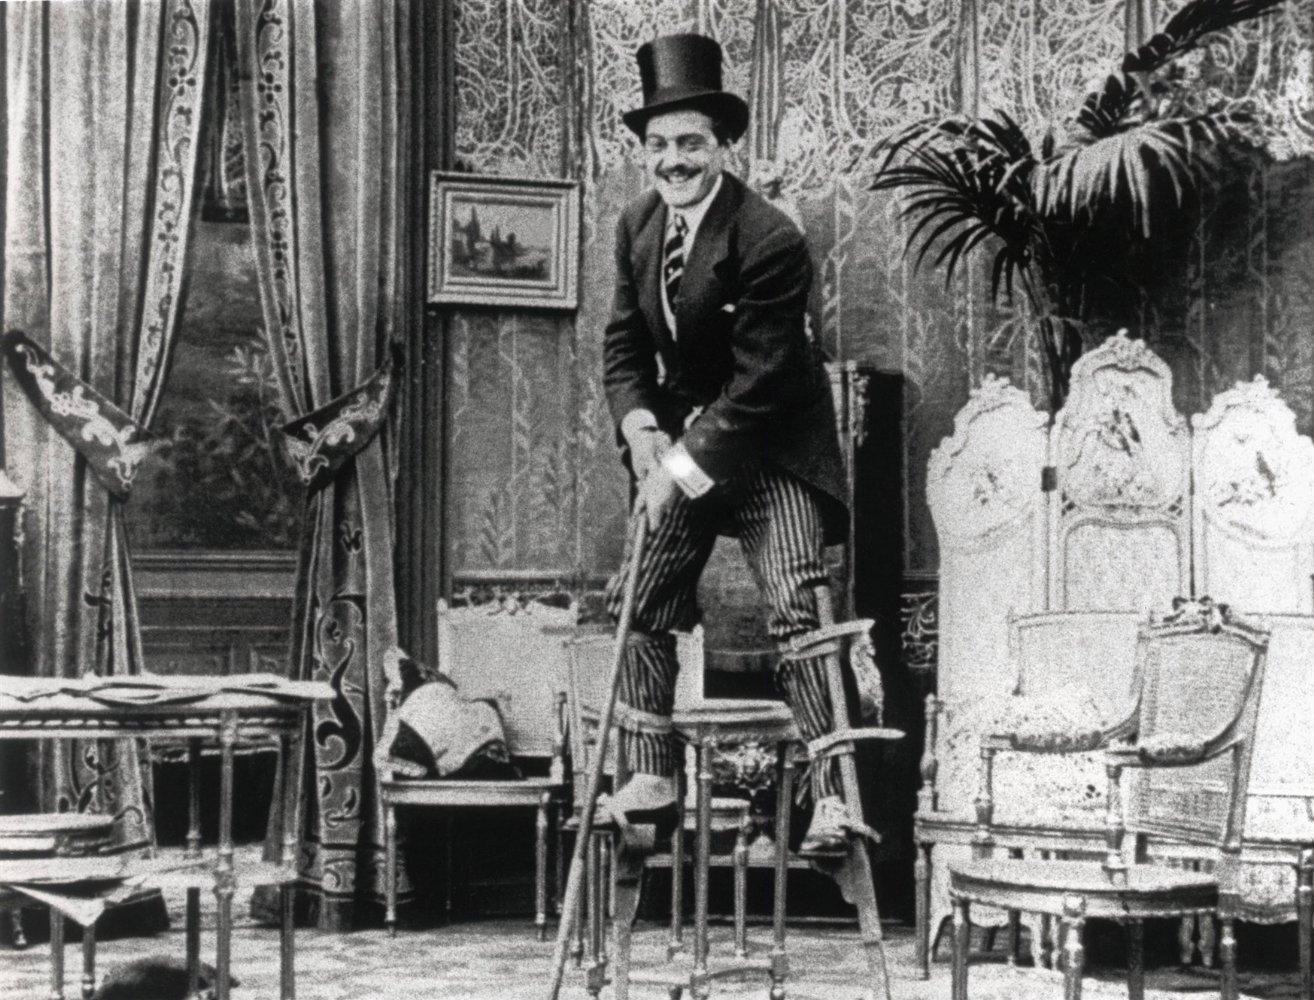 Anthony Balducci's Journal: Max Linder and André Deed: The First Comedy  Team of the Cinema